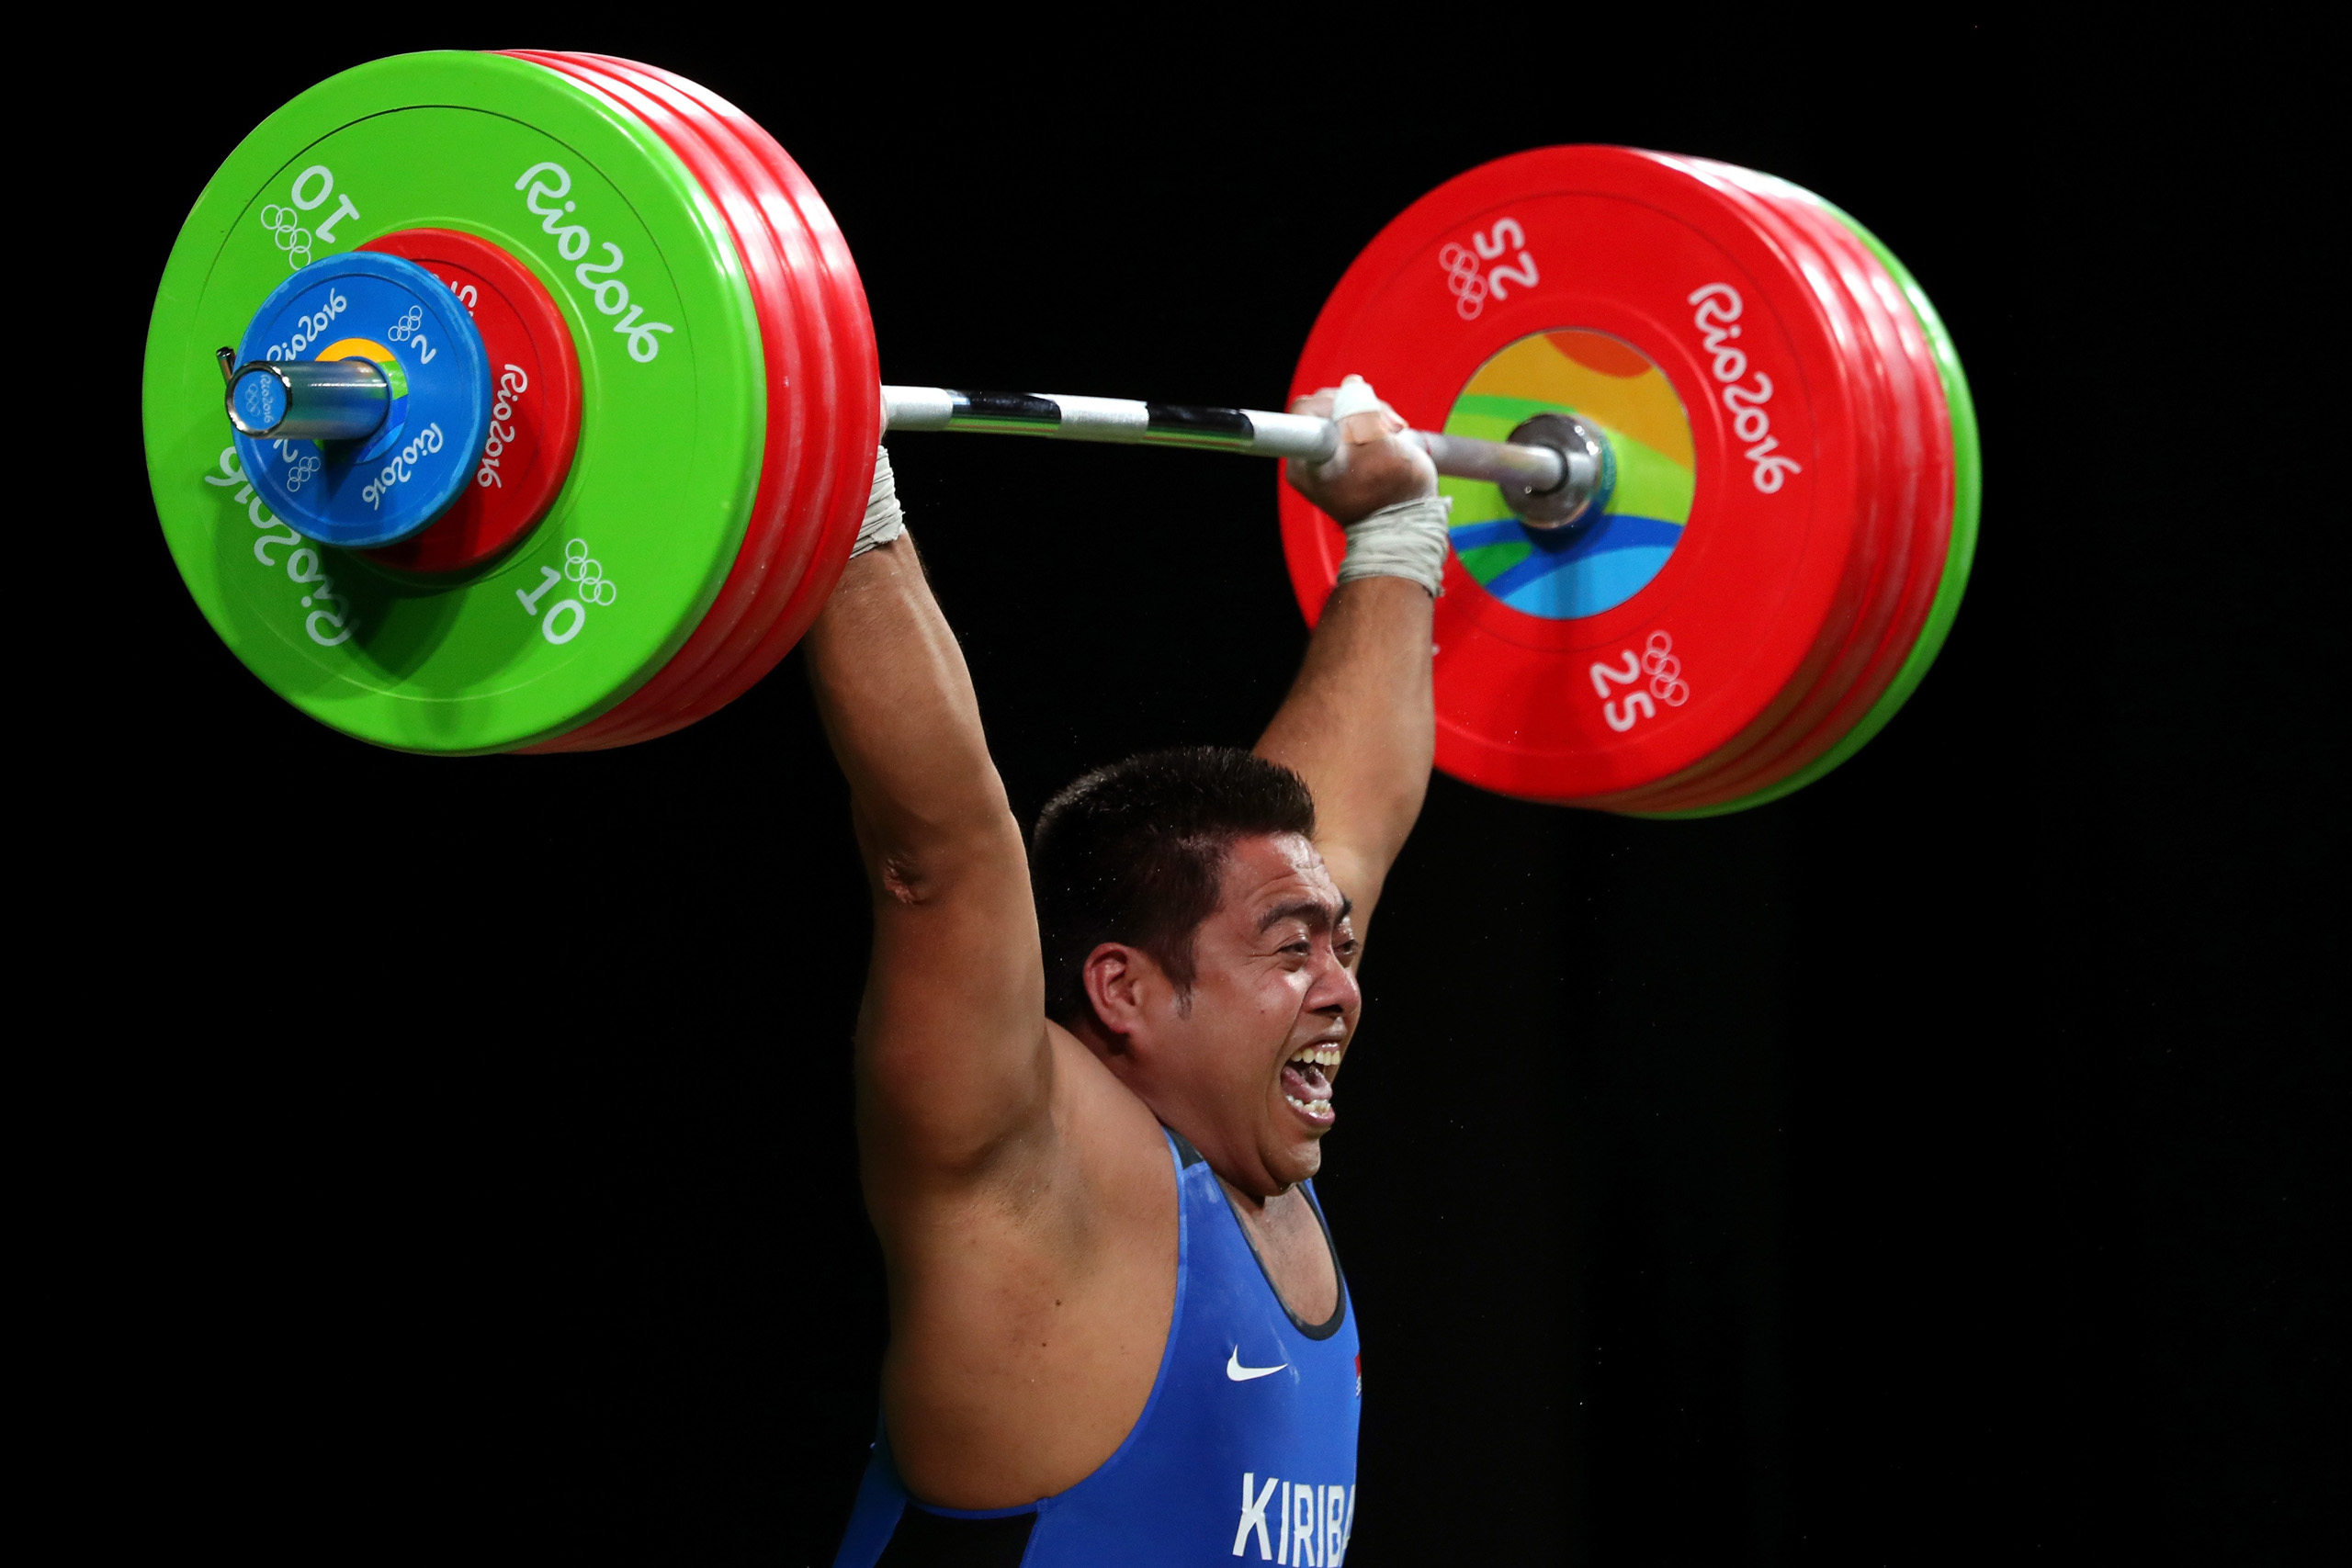 David Katoatau of Kiribati competes during the Men's 105kg Group B Weightlifting event on Day 10 of the Rio 2016 Olympic Games at Riocentro - Pavilion 2 in Rio de Janeiro on Aug. 15, 2016.